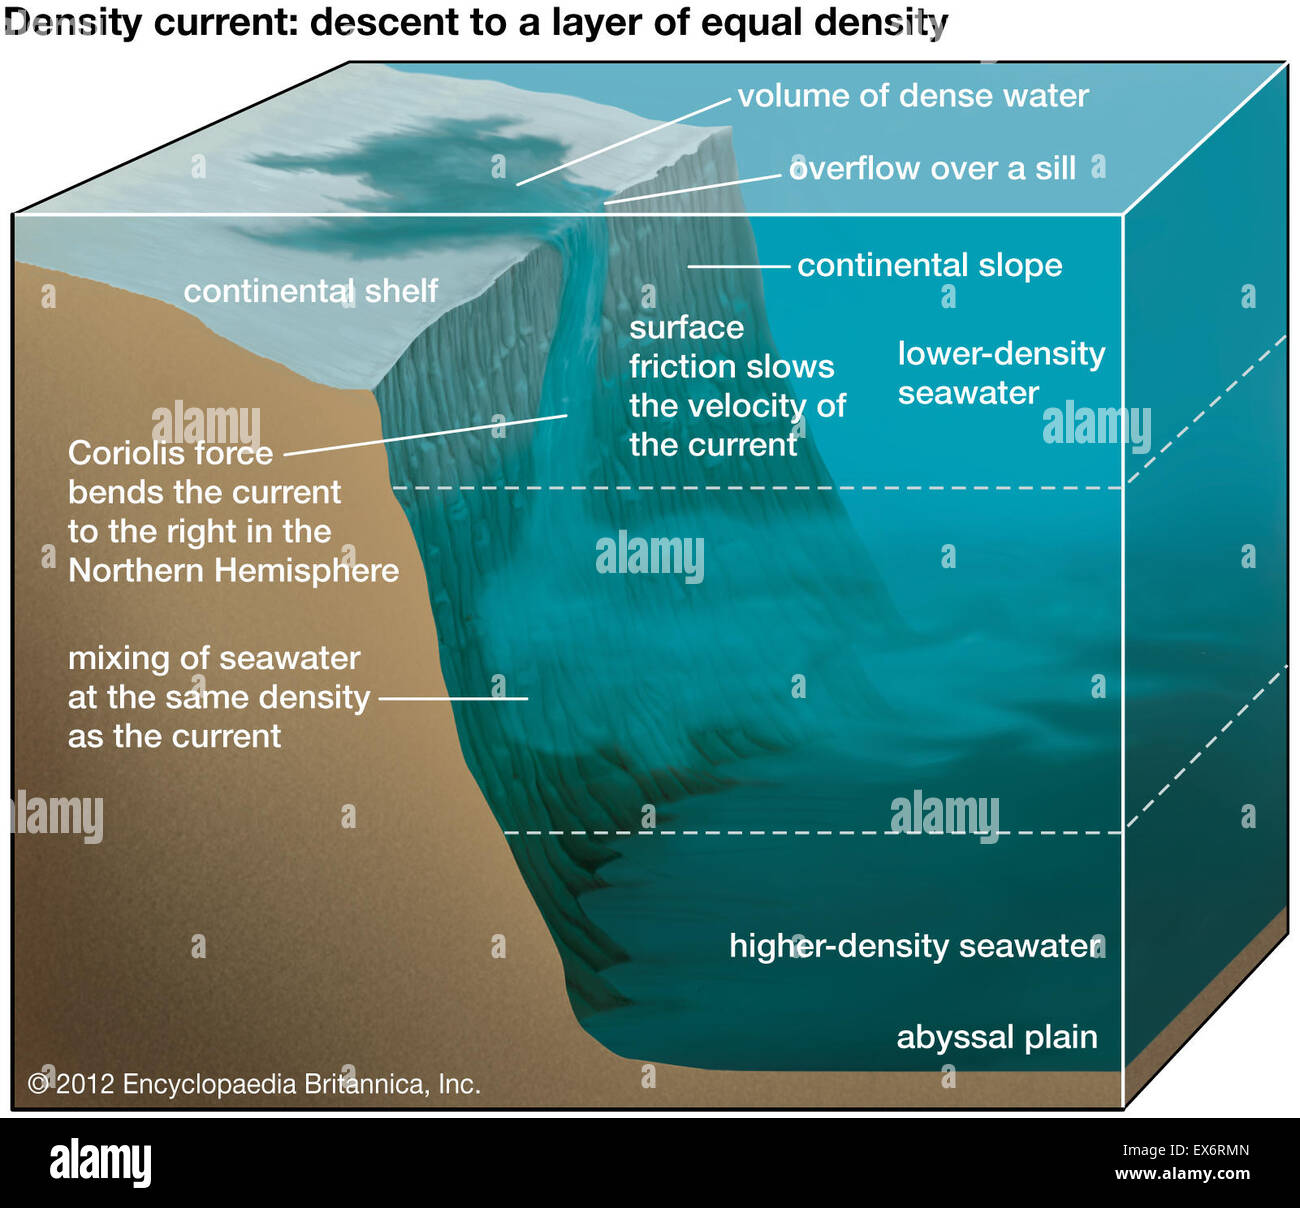 Descent to an ocean layer of equal density - Stock Image